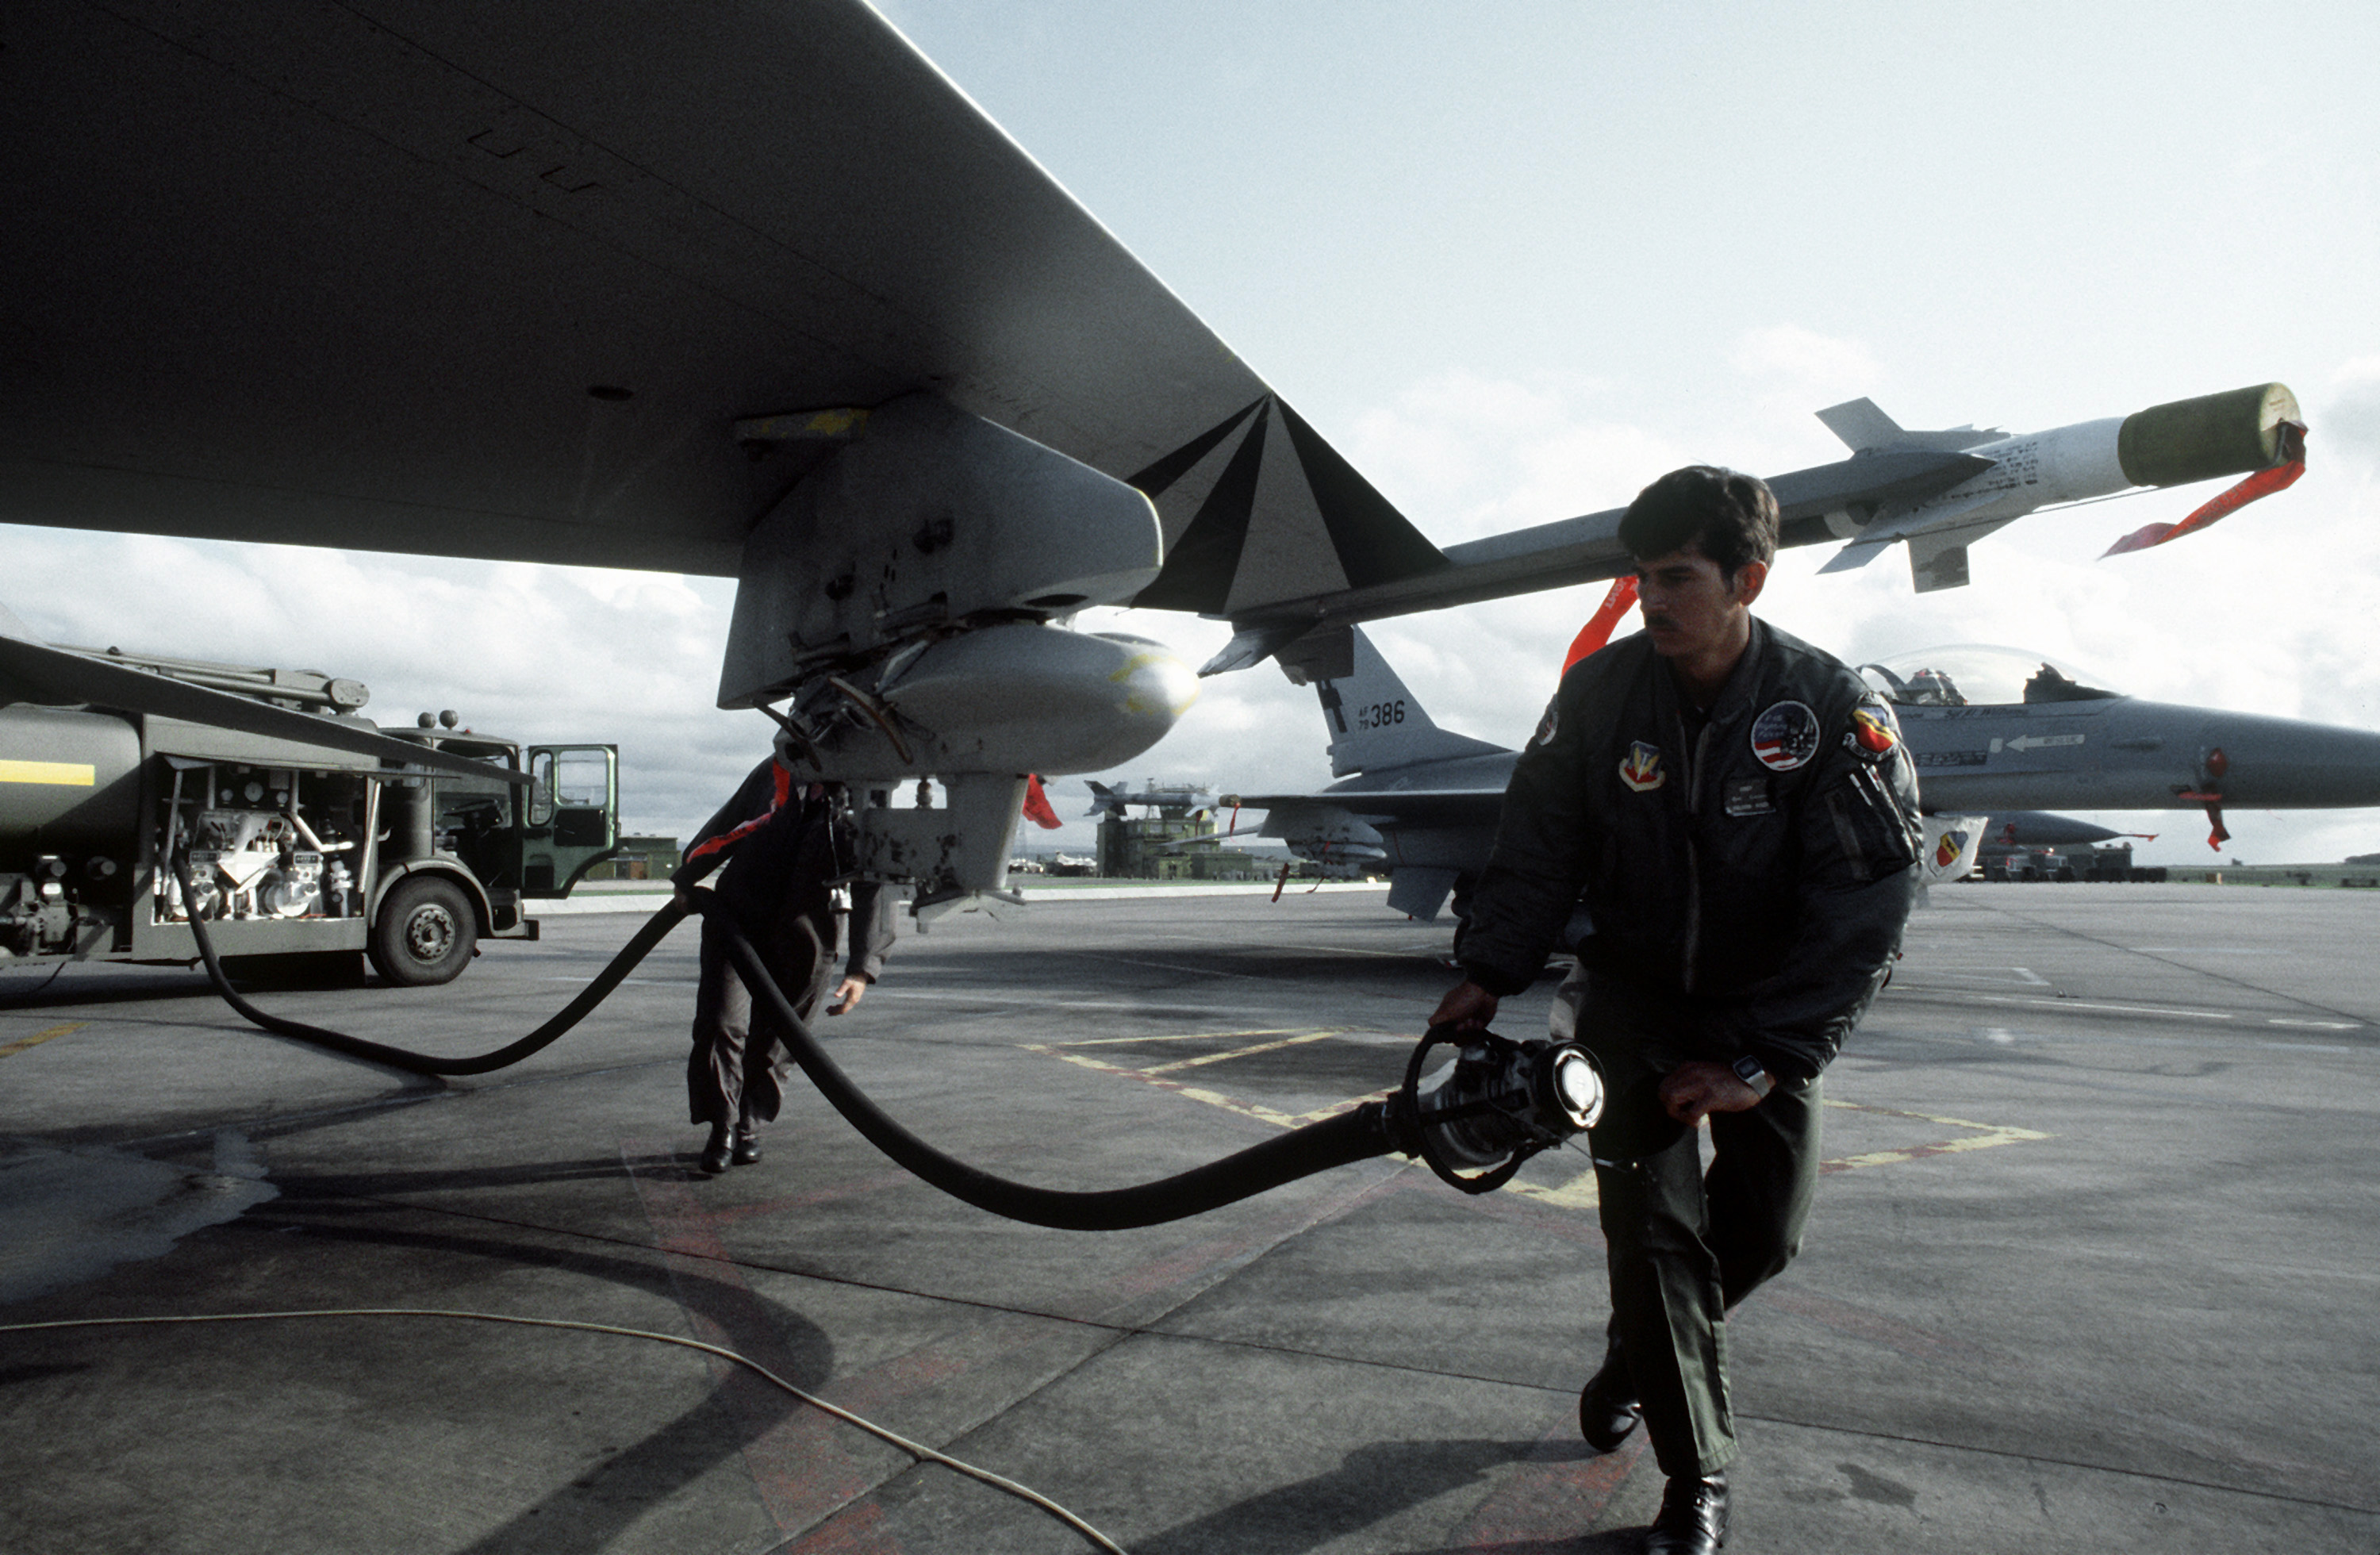 388th Tactical Fighter Wing members prepare to refuel an F-16A Fighting Falcon aircraft during the quick turn competition. The members are involved in the Strike Command Tactical Bombing Competition between the United States and Royal Air Forces. AN AIM-9 Sidewinder missile is shown loaded on the wing tip